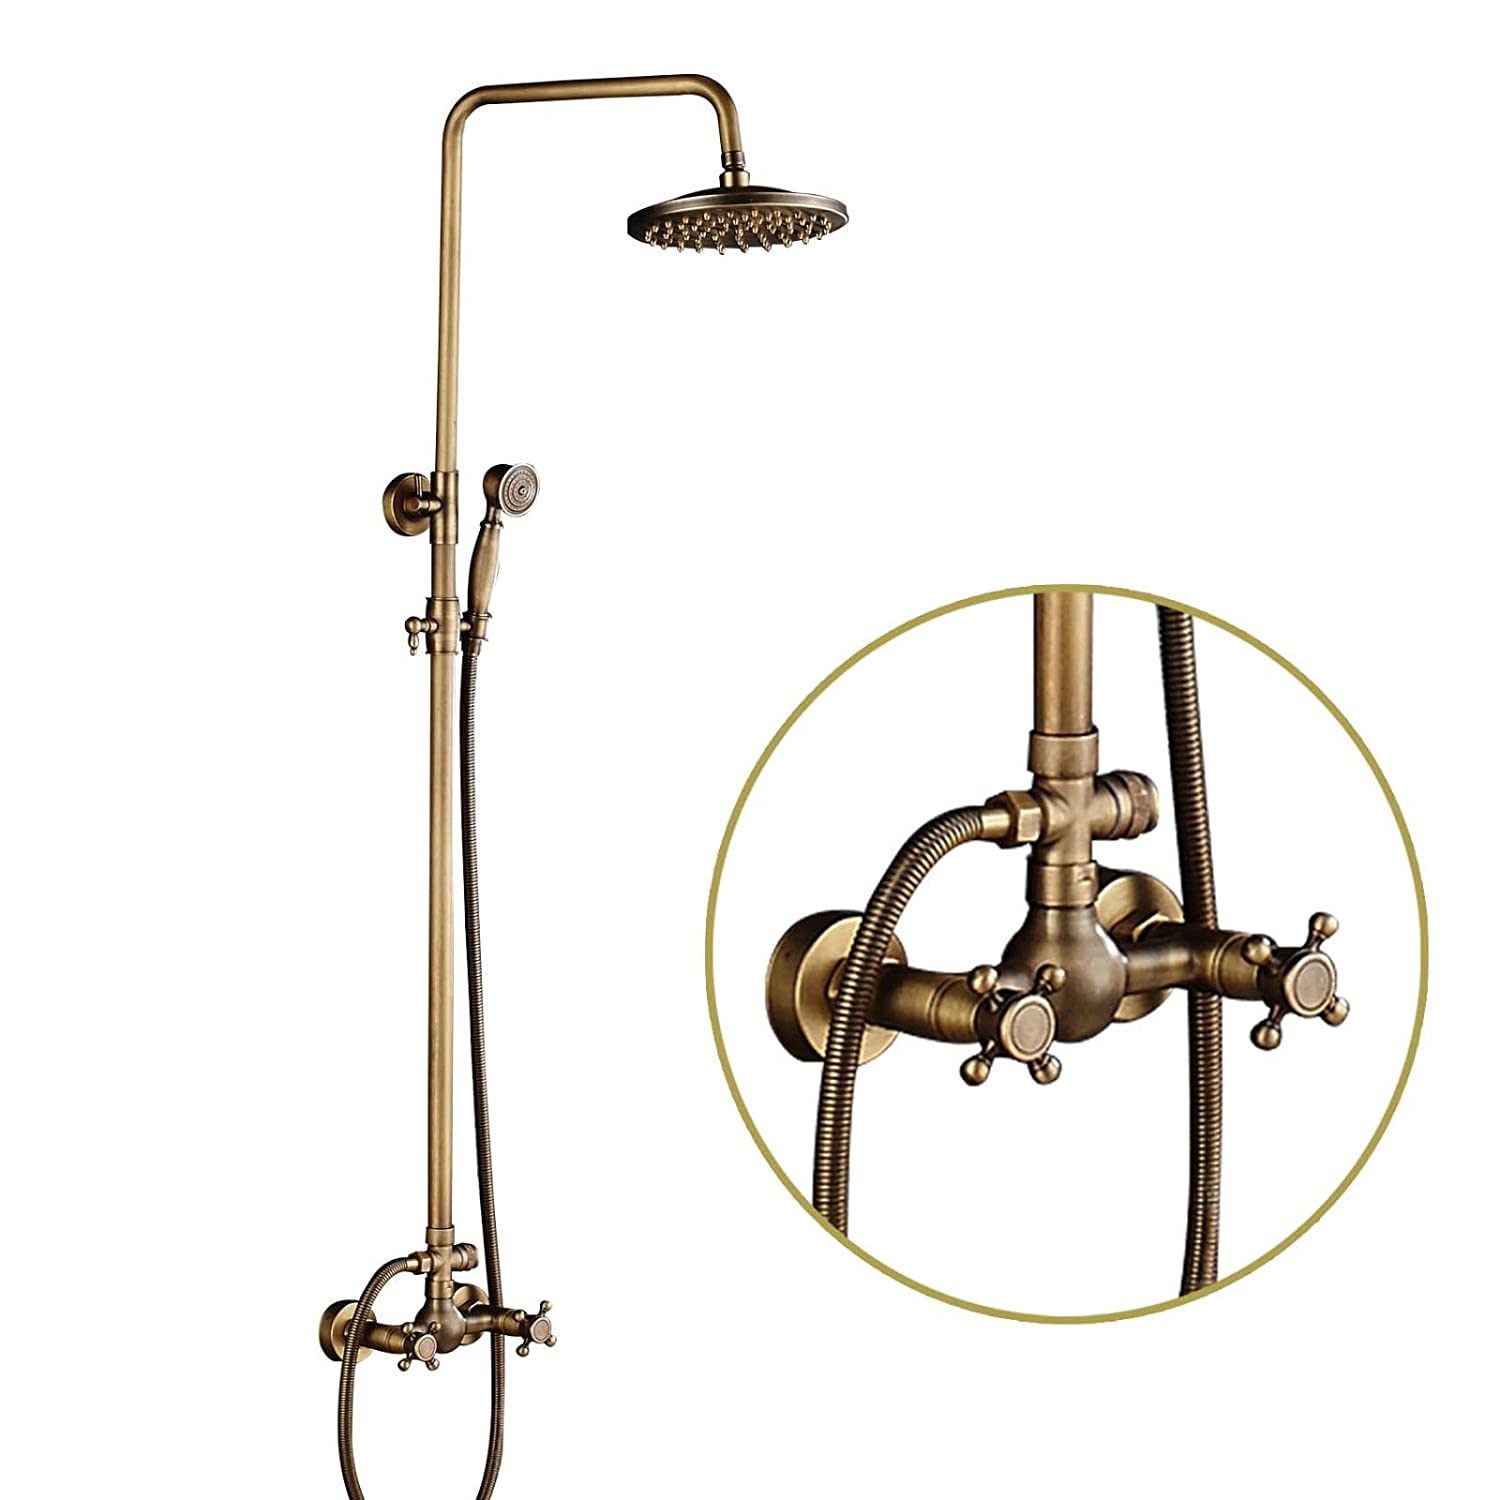 Rozin Antique Brass Shower Faucet Set Brass Handheld Shower Tap Rainfall Head Wall Mounted